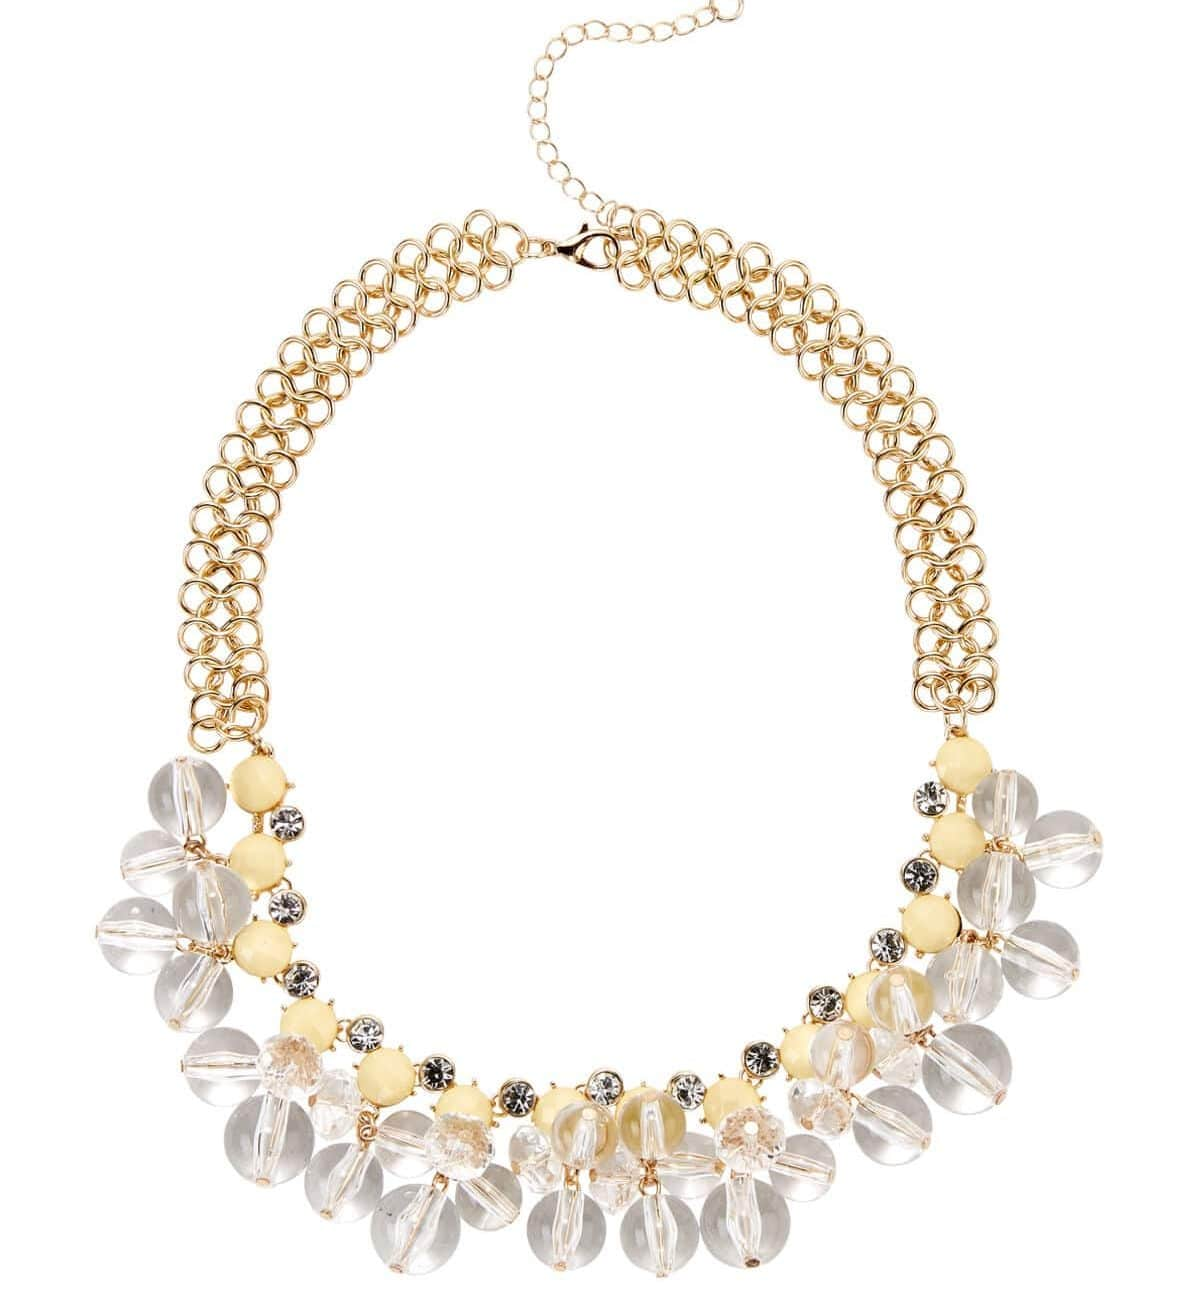 gold-clear-accent-statement-necklace-2